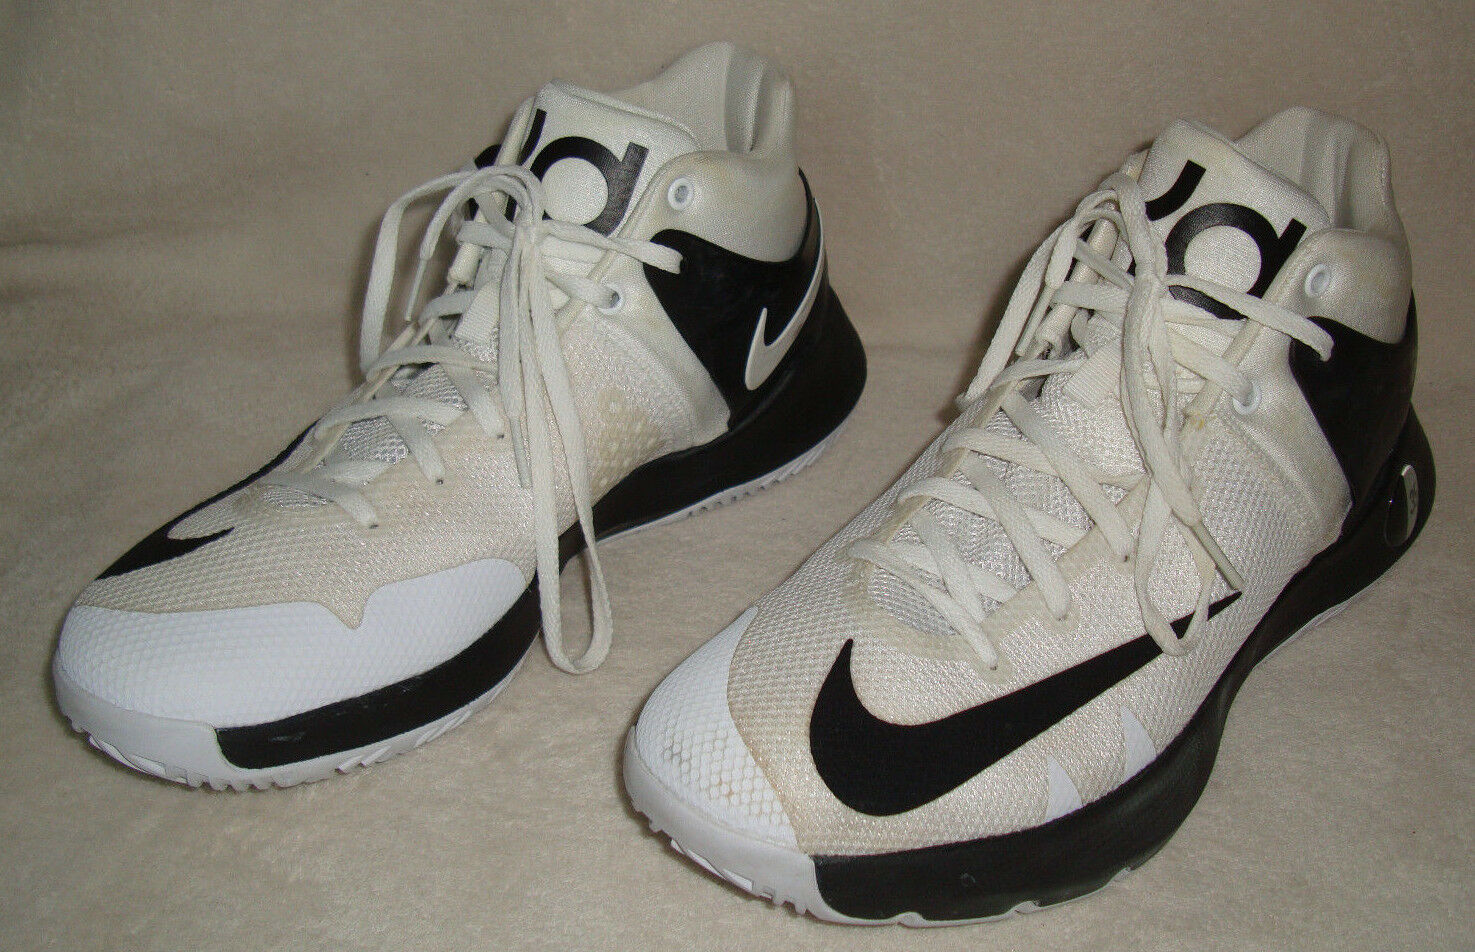 NIKE KD TREY 5 IV TB MEN'S WHITE BLACK BASKETBALL SHOES SIZE 8.5D  New shoes for men and women, limited time discount